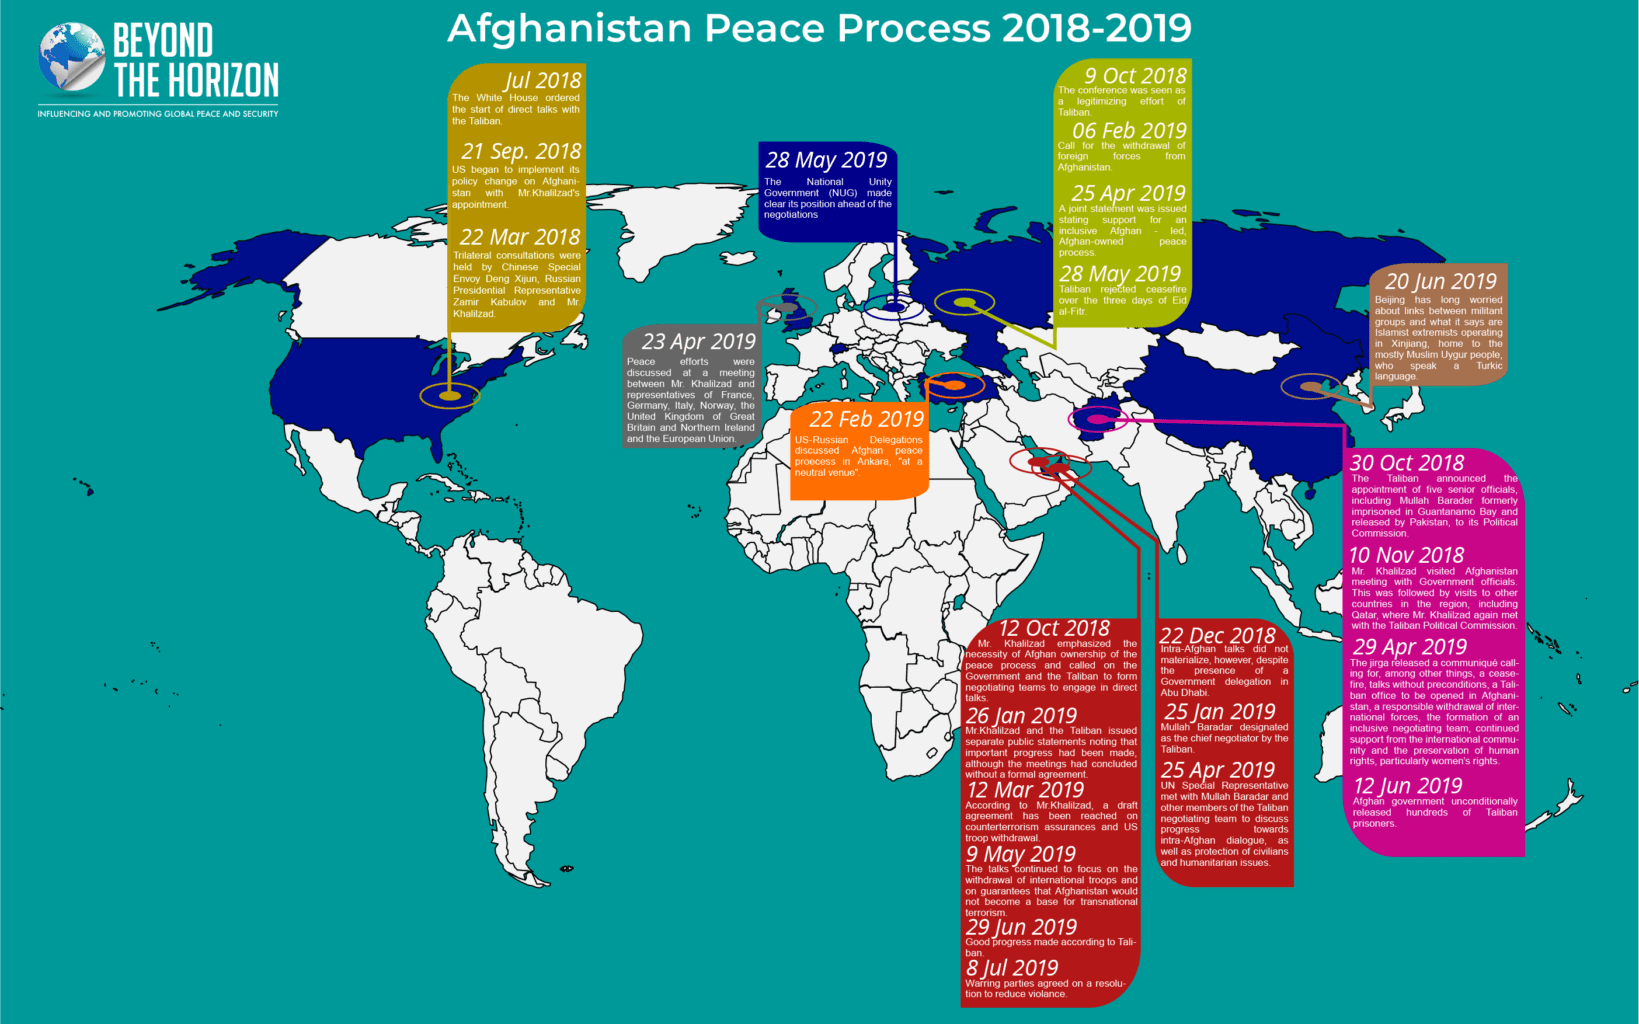 Afghan Peace Process Infographic 1 Beyond the Horizon ISSG